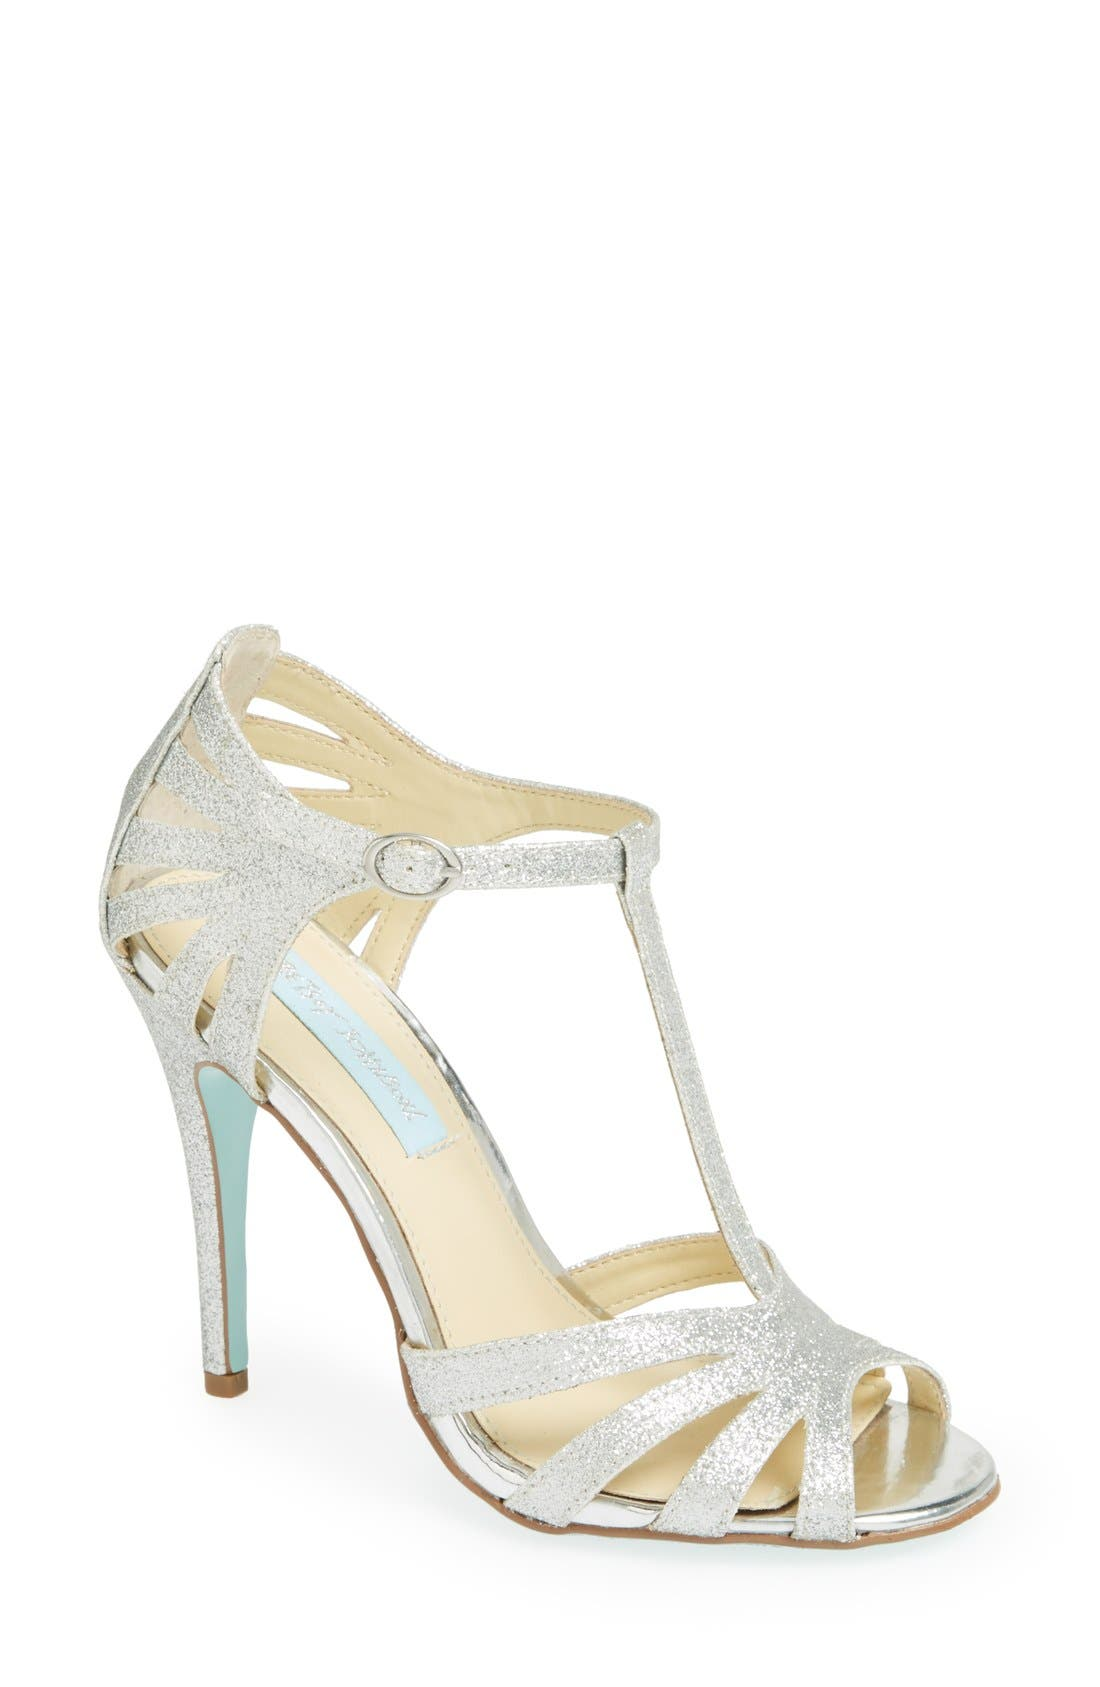 Main Image - Blue by Betsey Johnson 'Tee' Sandal (Women)